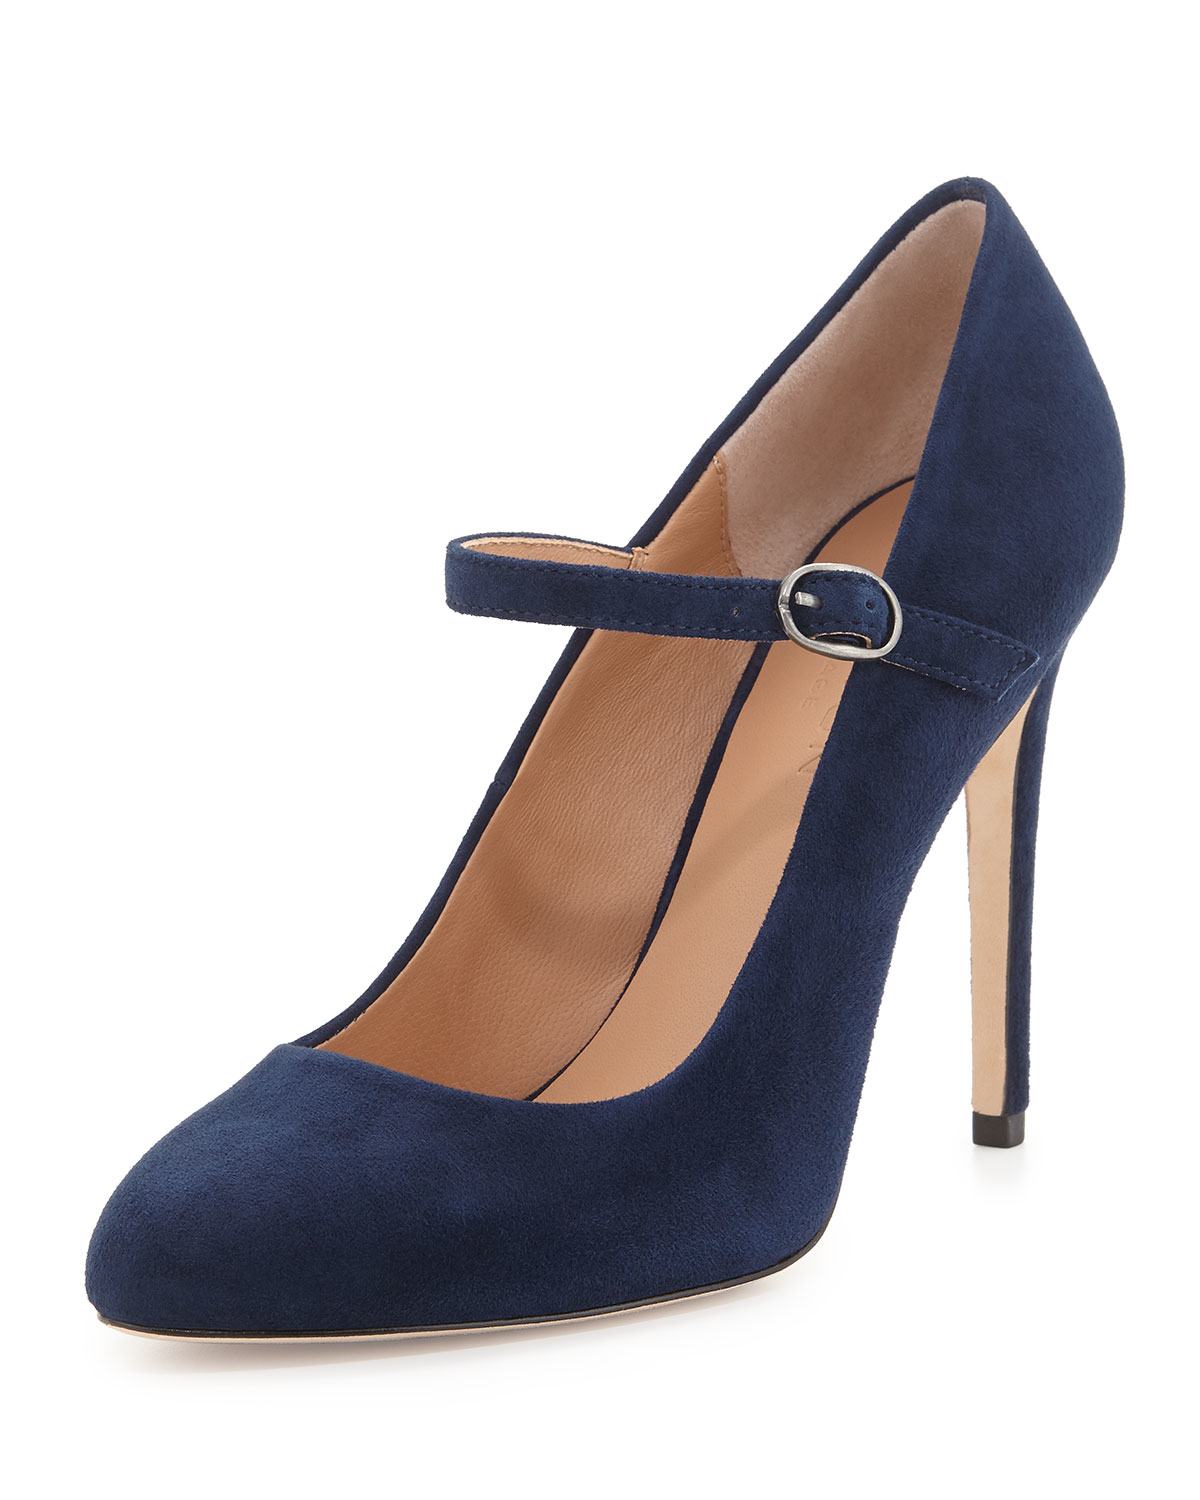 Halston Carol Suede Mary Jane Pump in Blue | Lyst